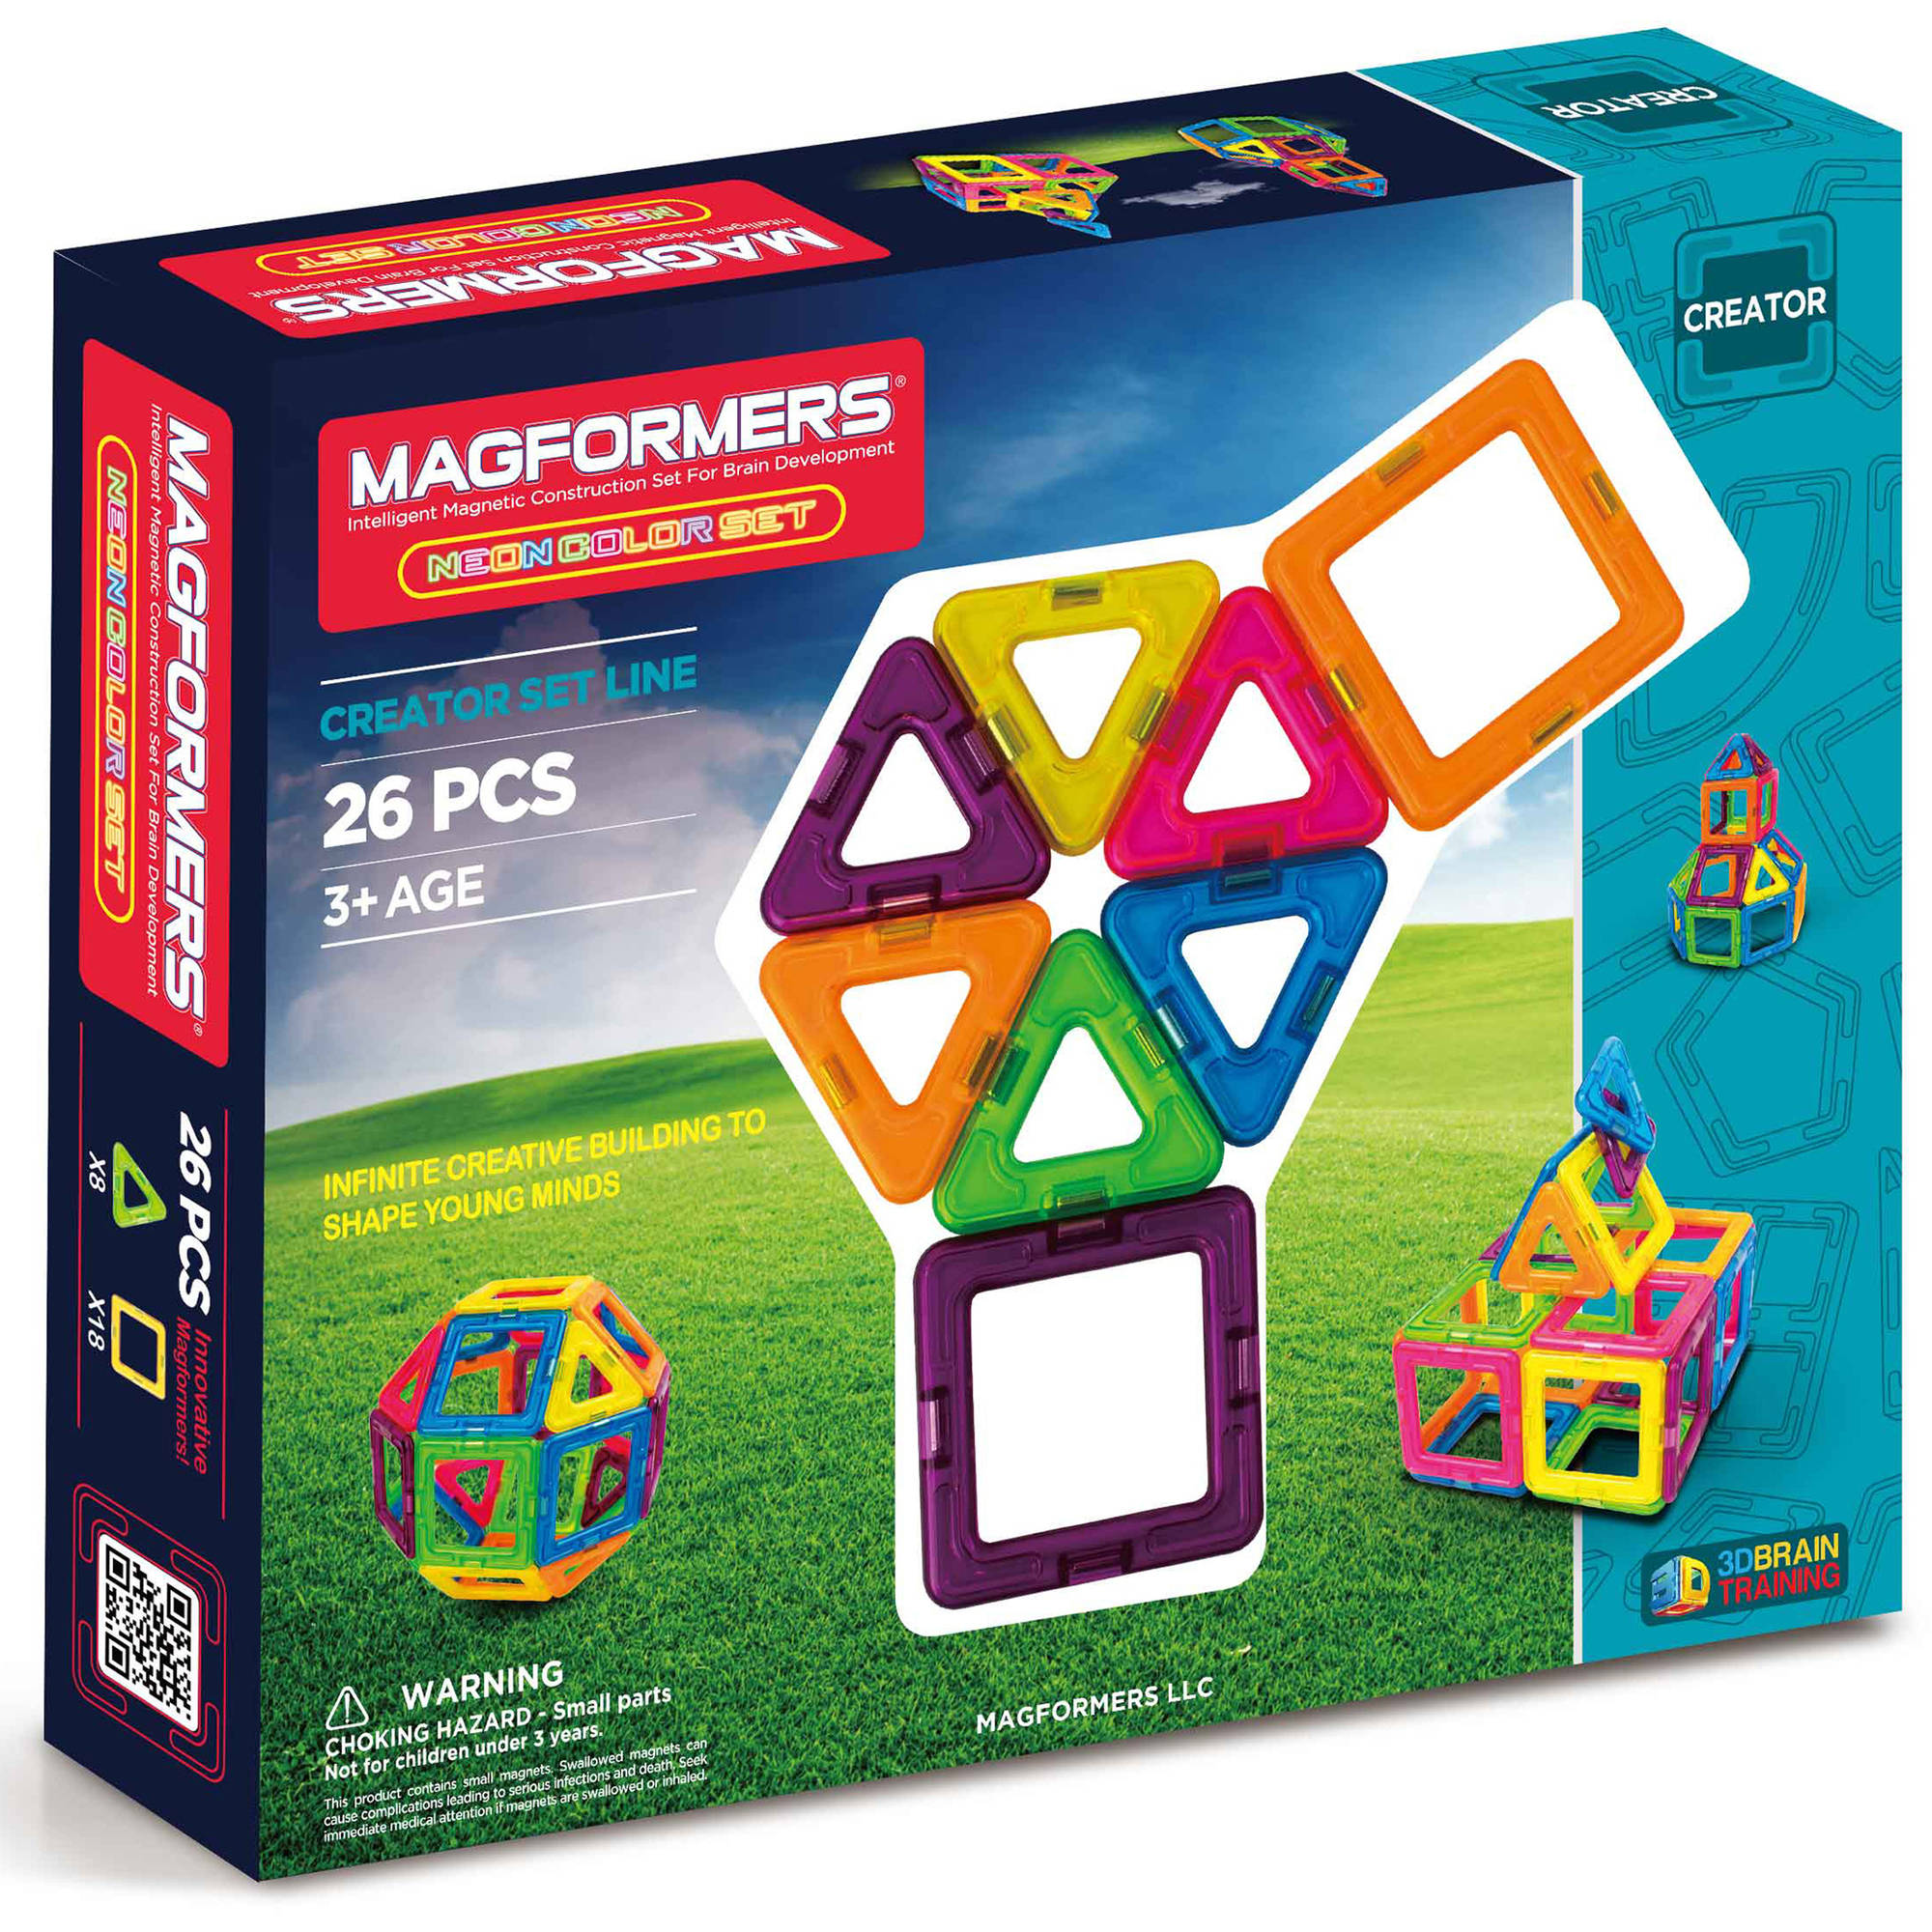 MAGFORMERS Neon 26-Piece Magnetic Construction Set